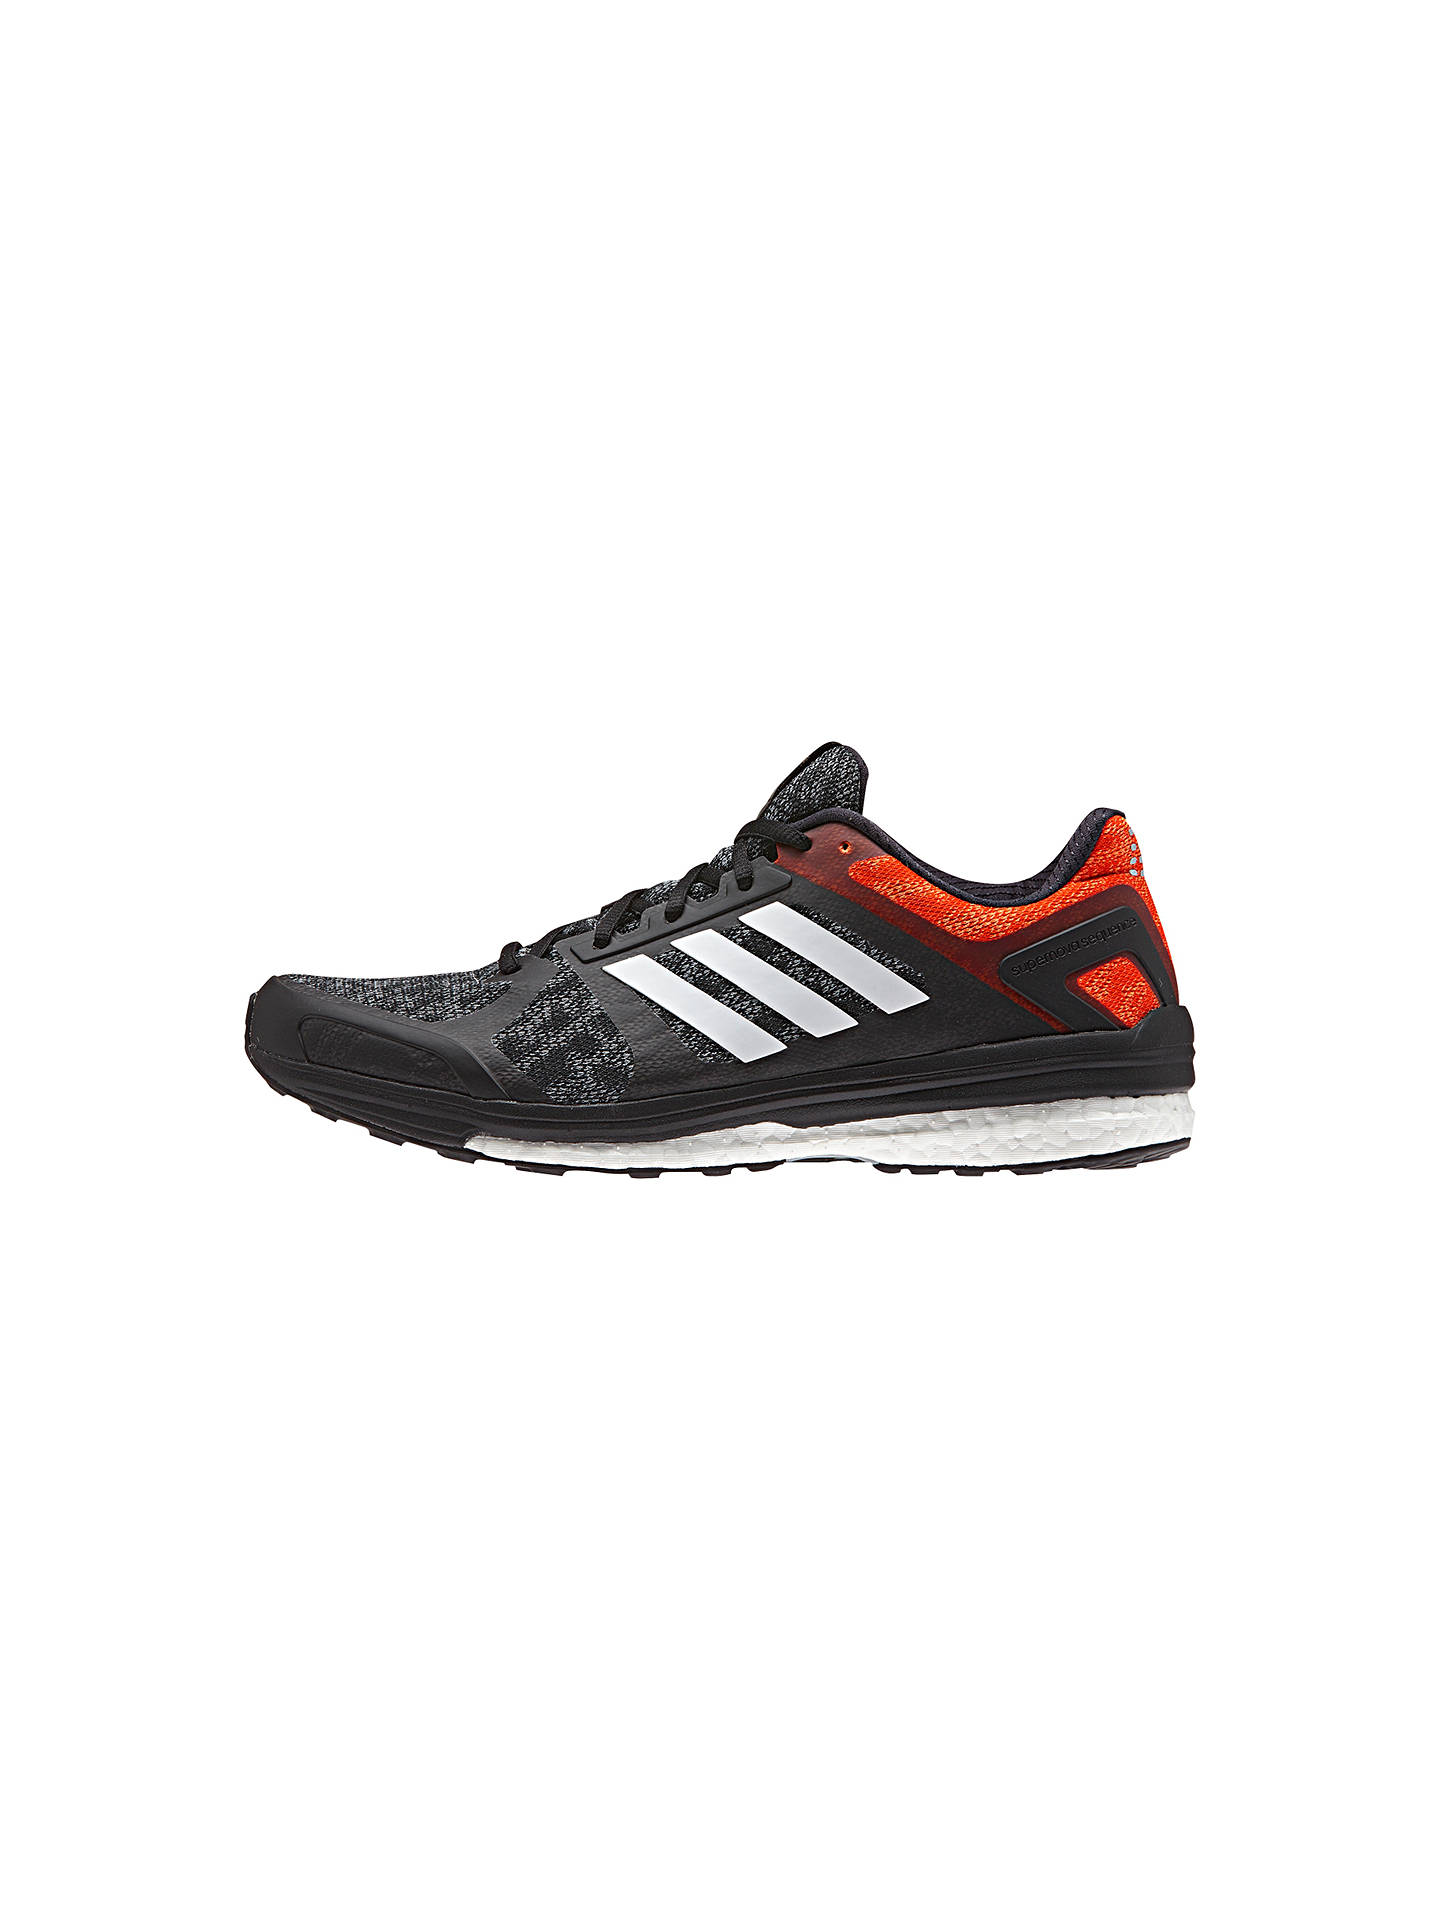 6ad204cdad9ee Adidas Supernova Sequence 9 Men s Running Shoes